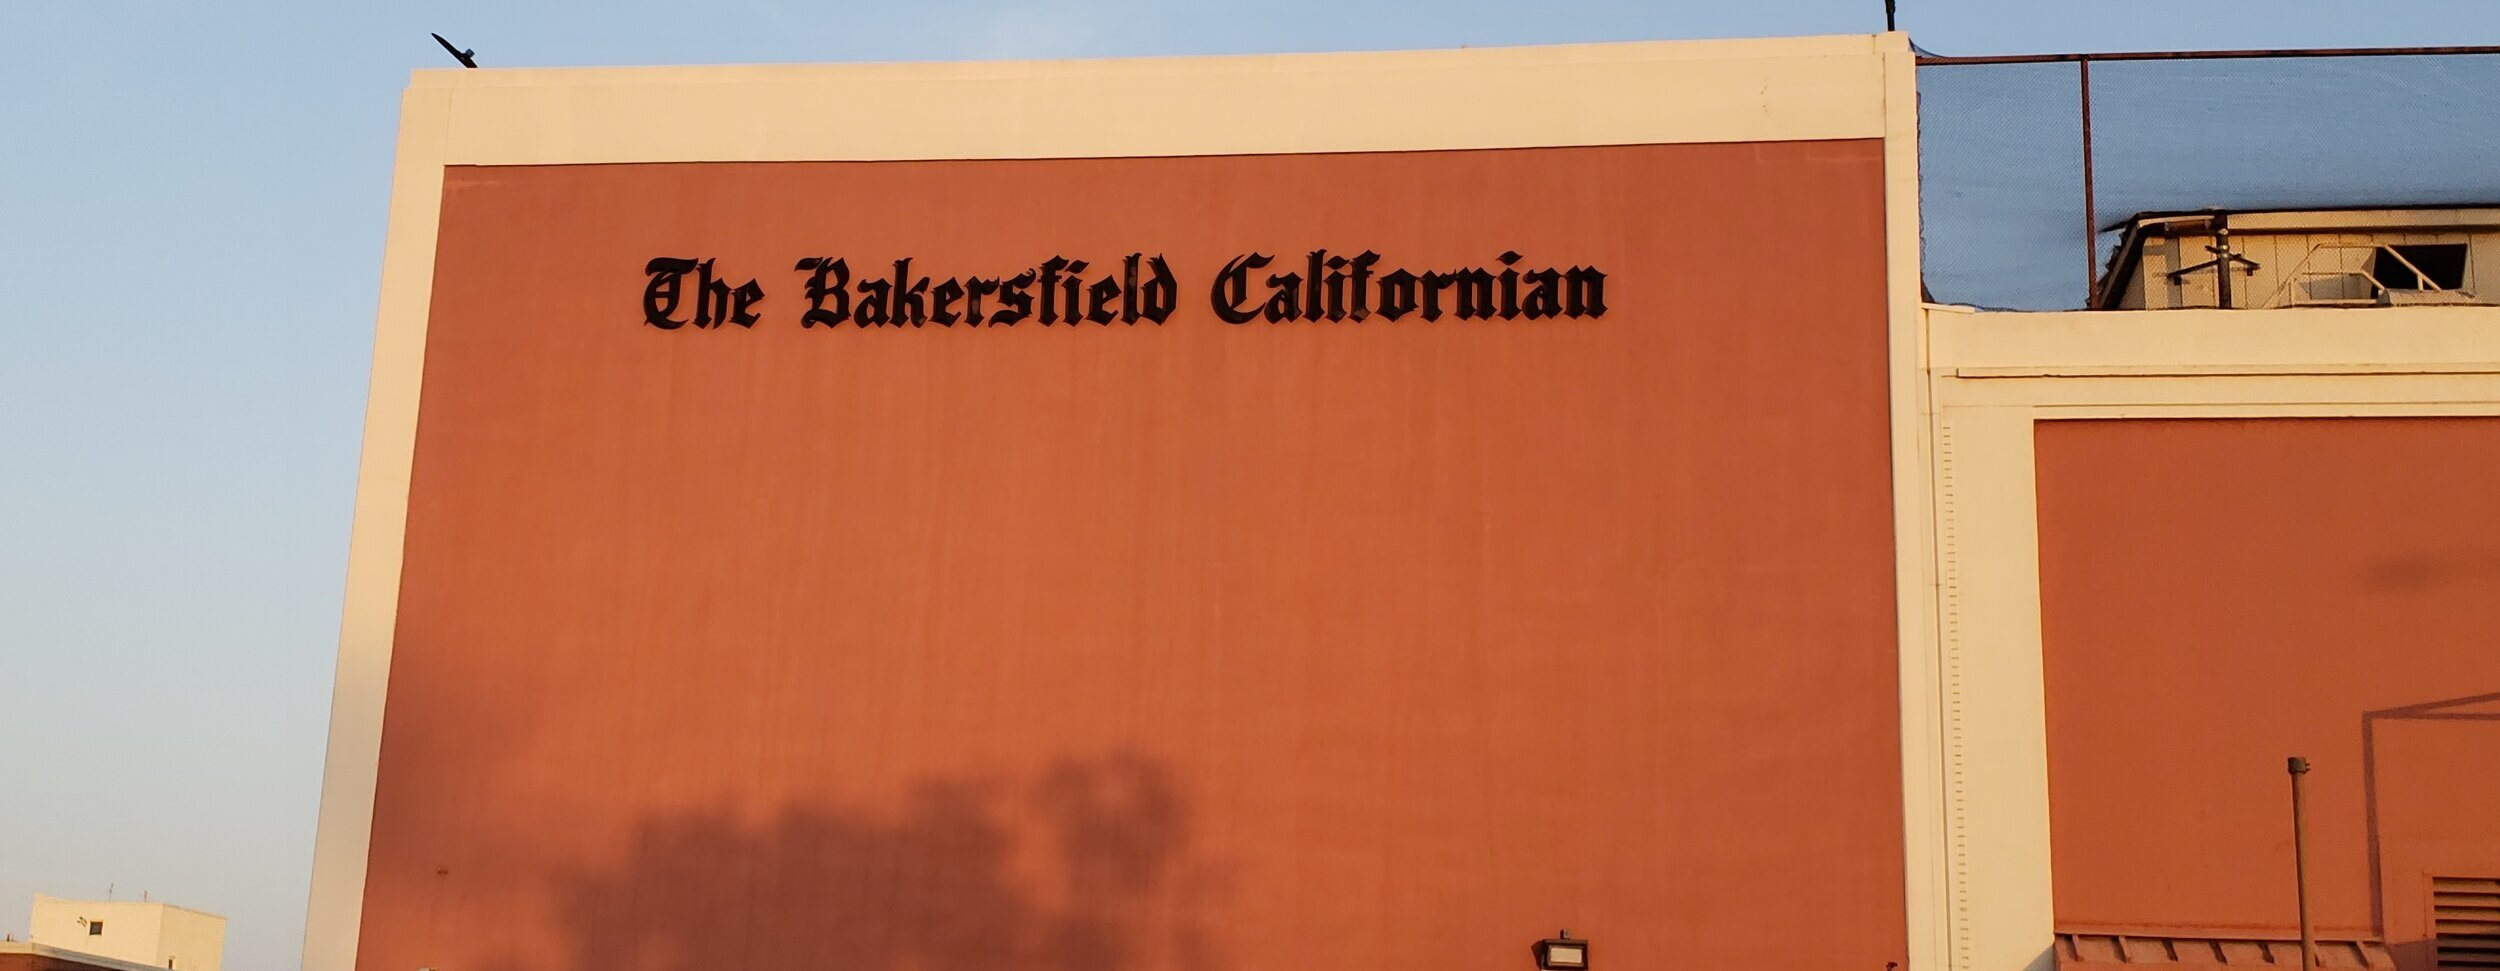 Despite moving in 2018, the Bakersfield Californian Building still bears the title of its original owner.